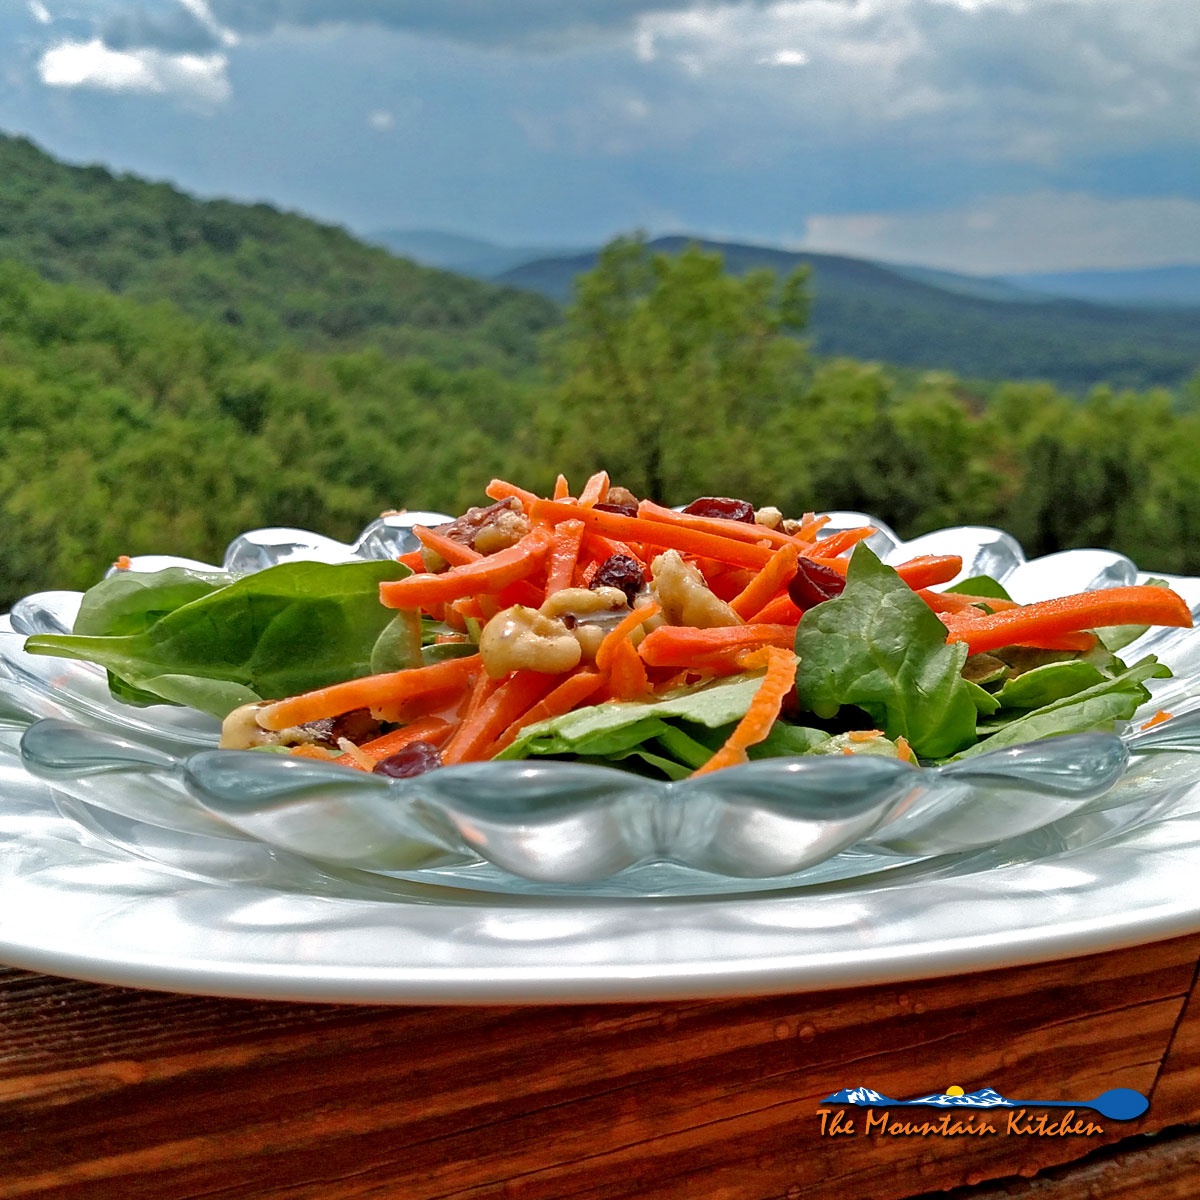 Carrot Salad With Homemade Dressing {A Meatless Monday Recipe